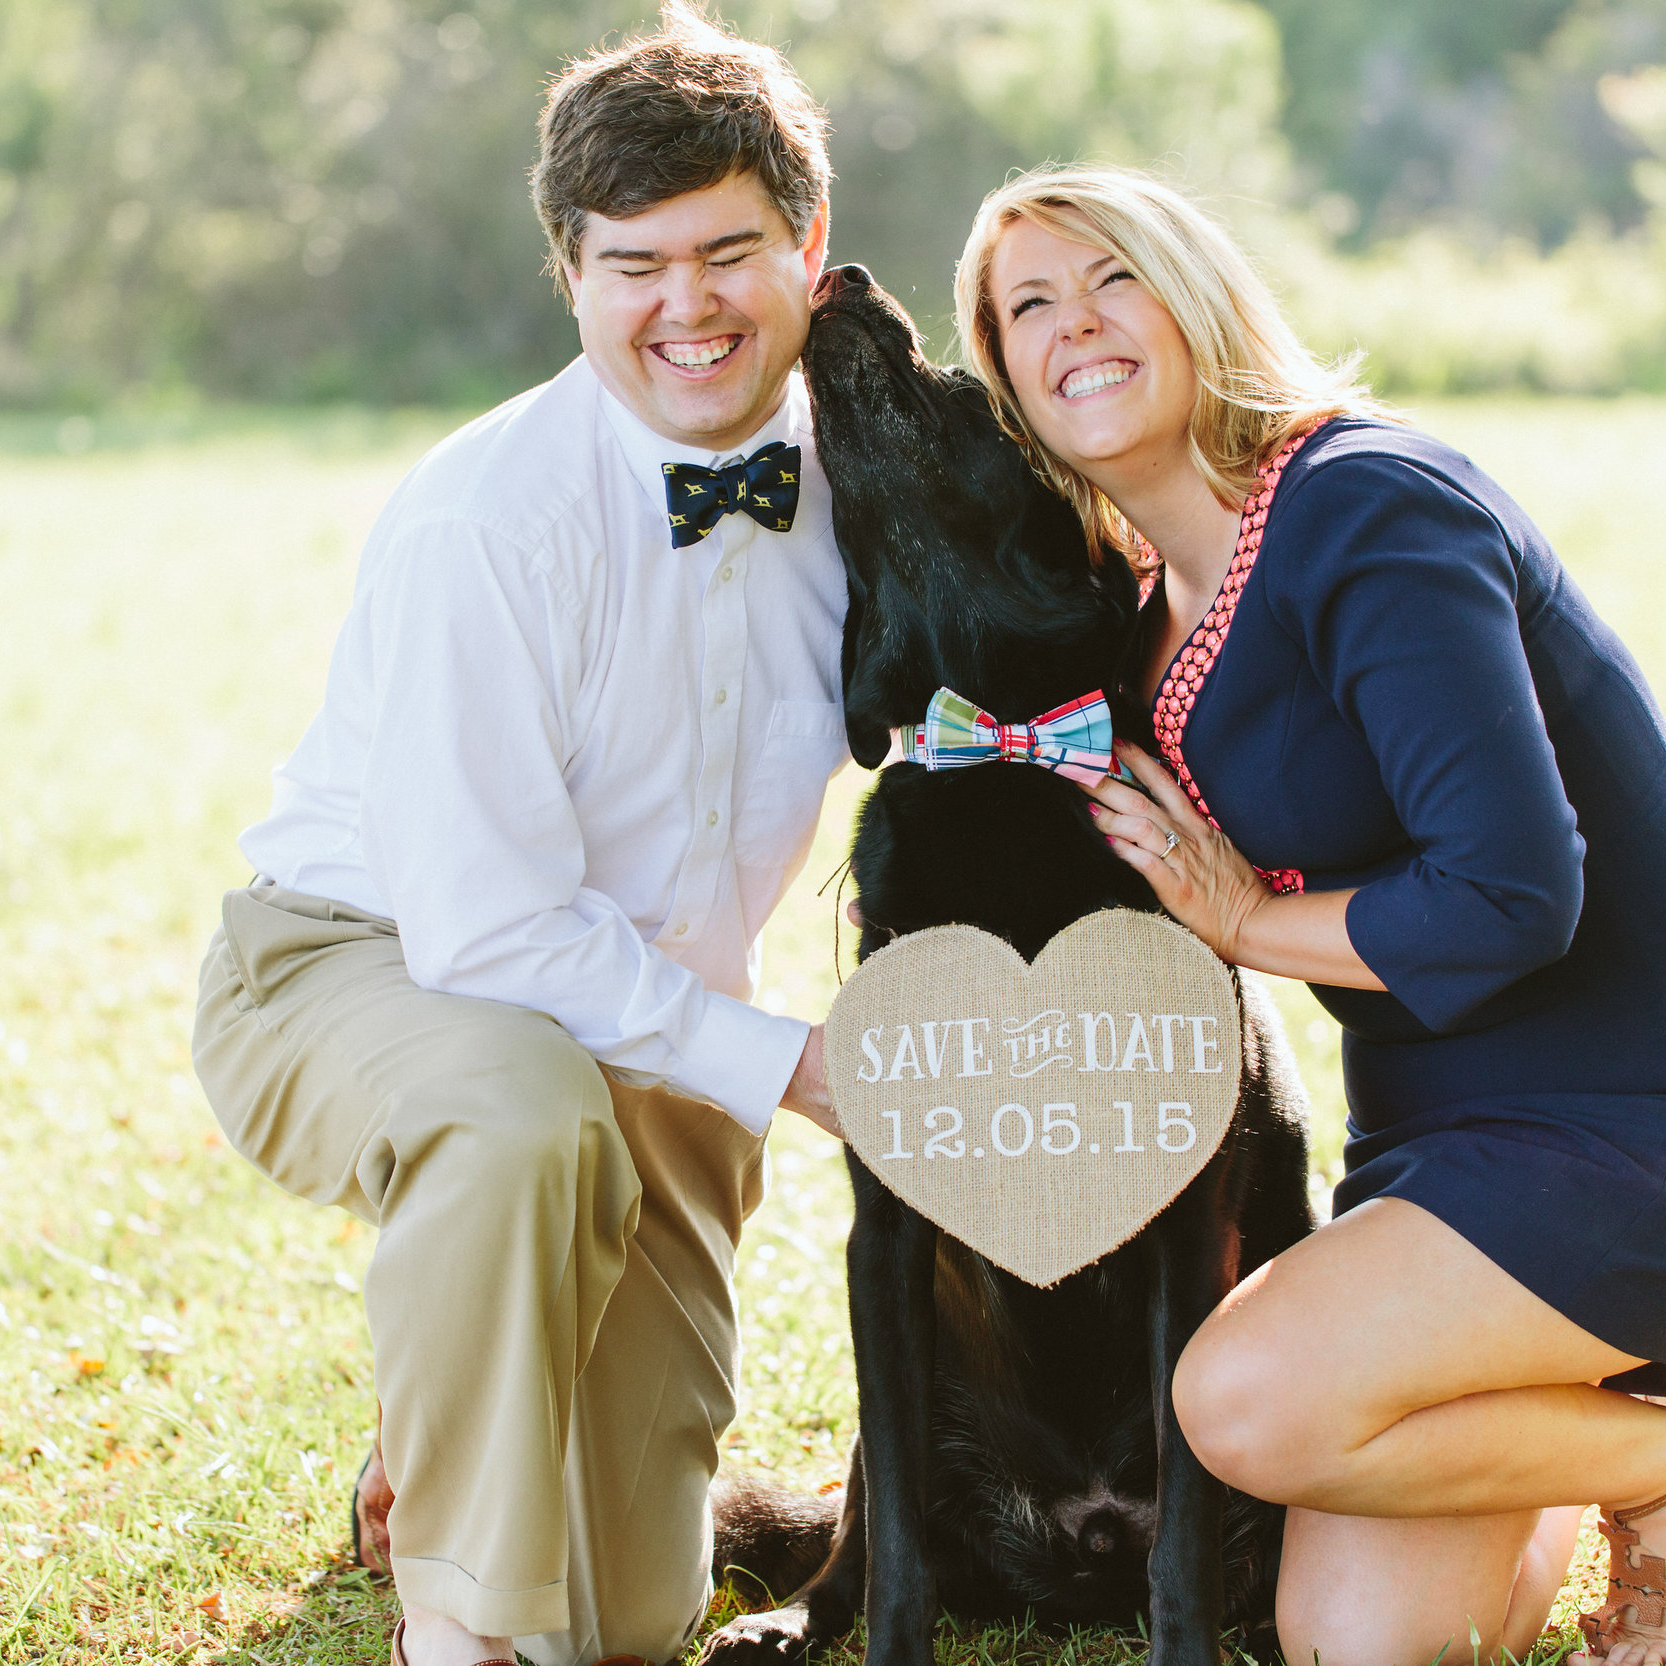 Riley Barr   Ring Bearer   Wilmington   Brittany adopted Riley about 3 months after we started dating. Ryan was a bit hesitant at first but quickly grew to love this goofy, silly, ball chasing puppy! Riley brings so much joy to us each and every day, and we couldn't imagine our lives without him!